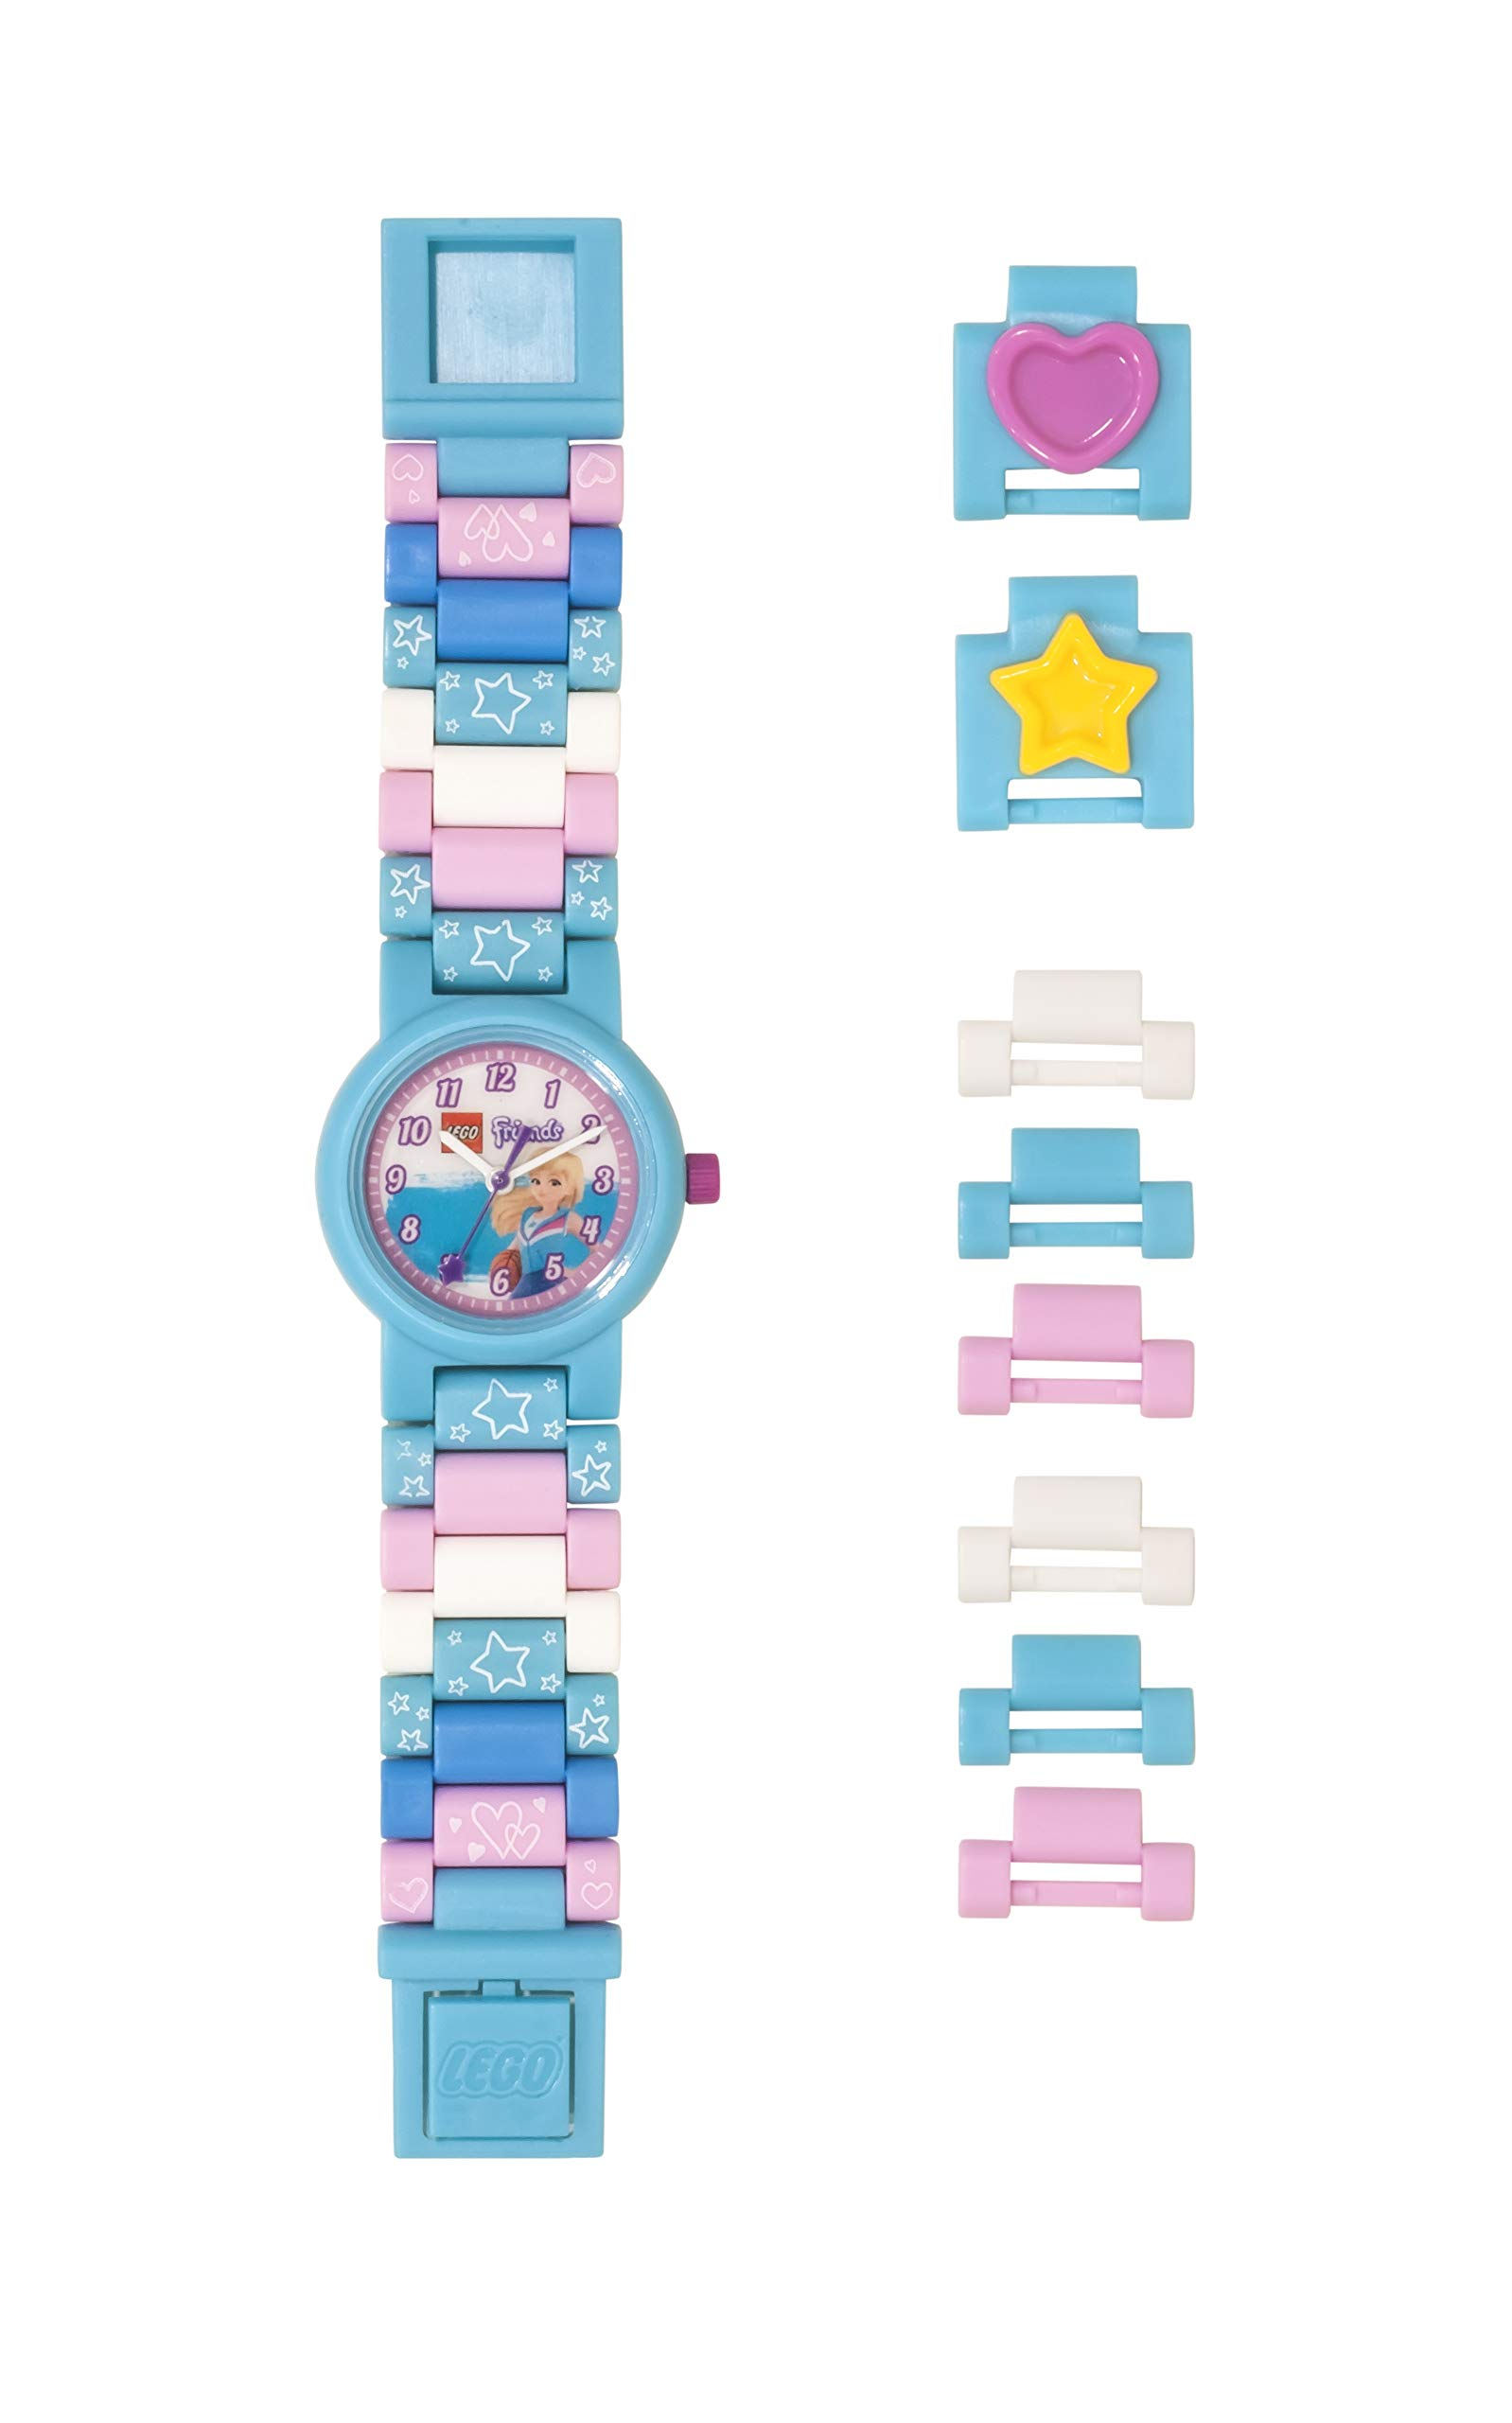 Lego Friends 8021254 Stephanie Kids Buildable Watch with Link Bracelet | Blue/White | Plastic | 25mm case Diameter| Analog Quartz | boy Girl | Official by ClicTime